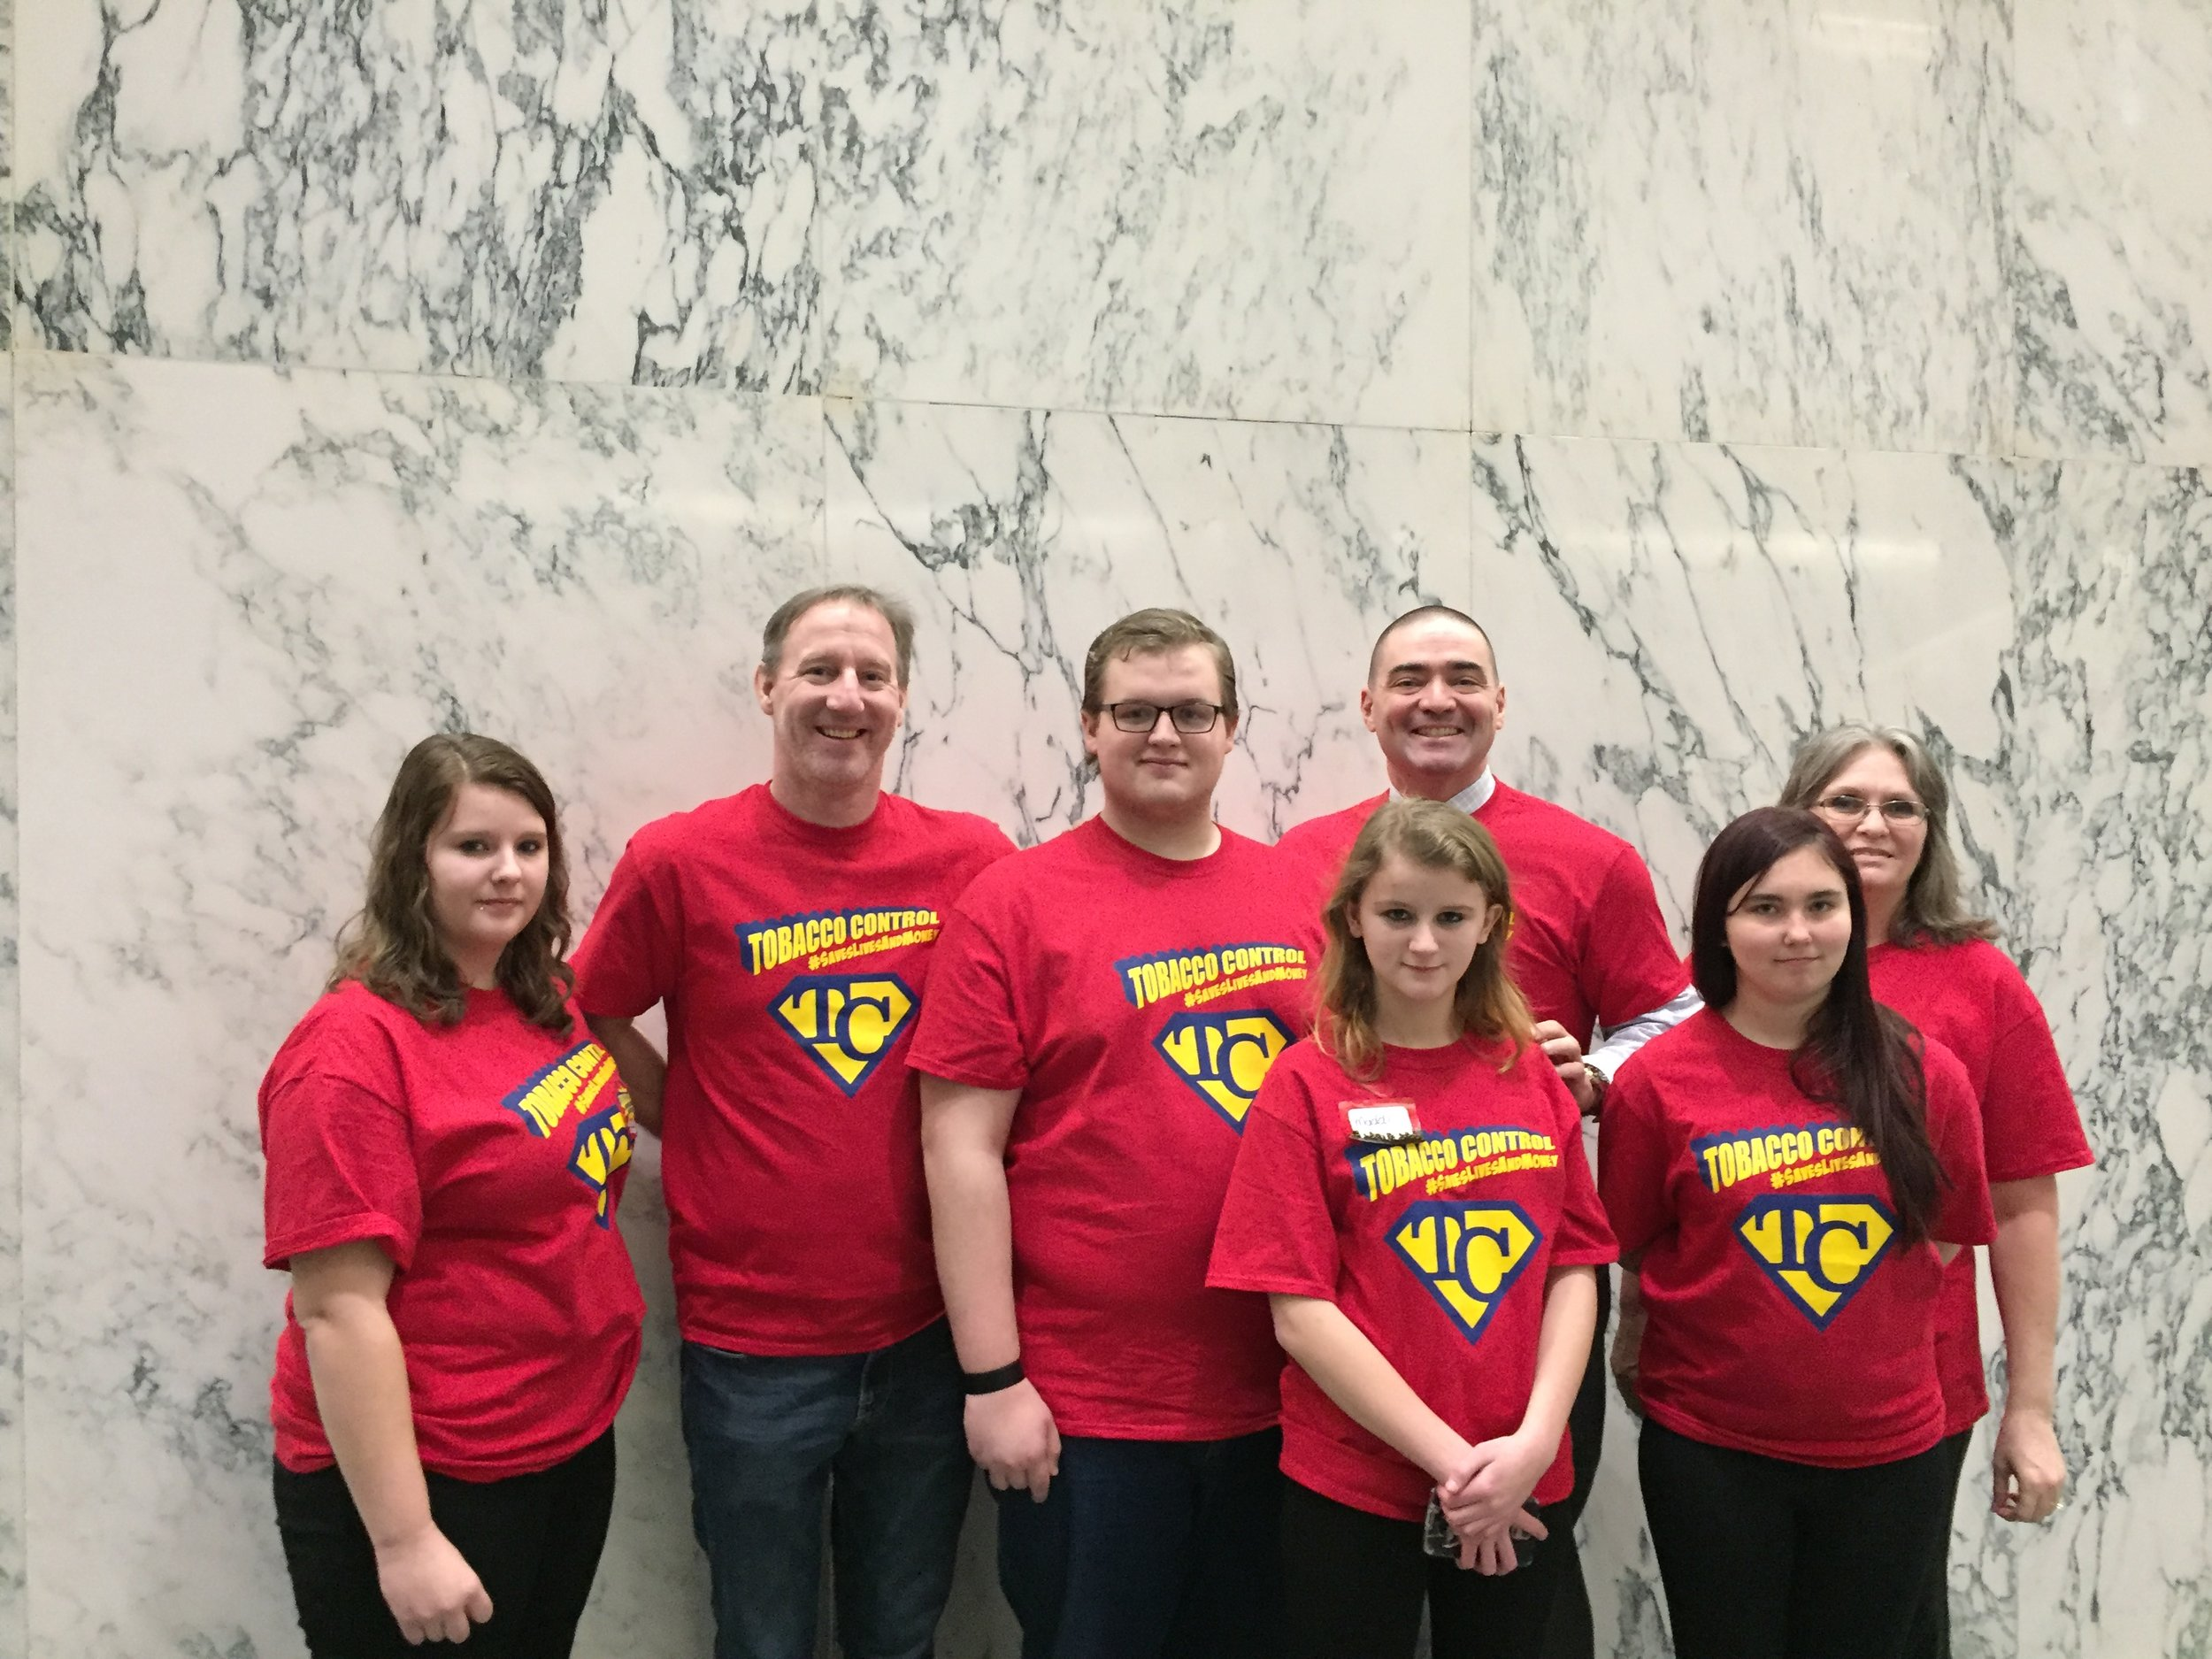 Chenango County RC - Norwich Reality Check youth from Chenango County checking in with Senator Akshar